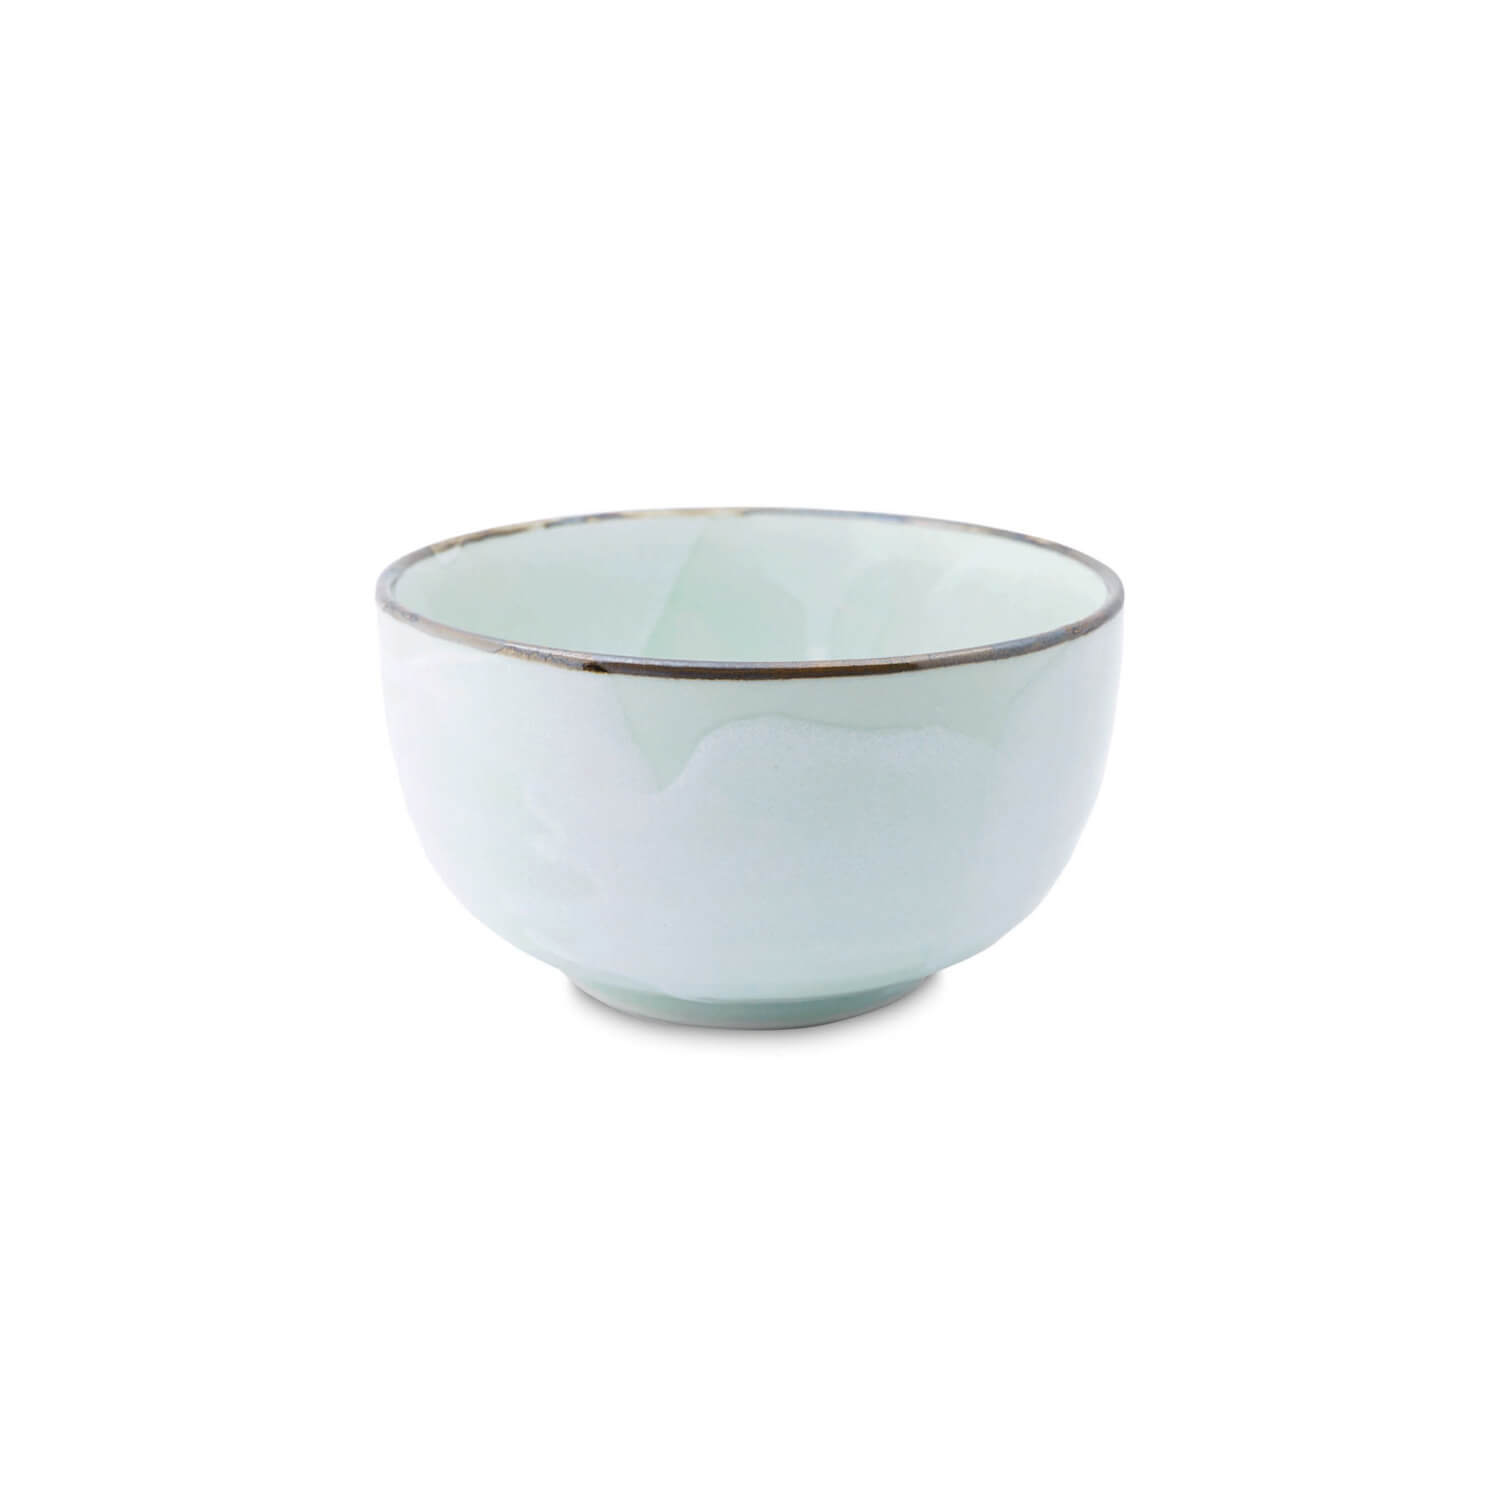 Original Japan Matcha bowl - Hinode